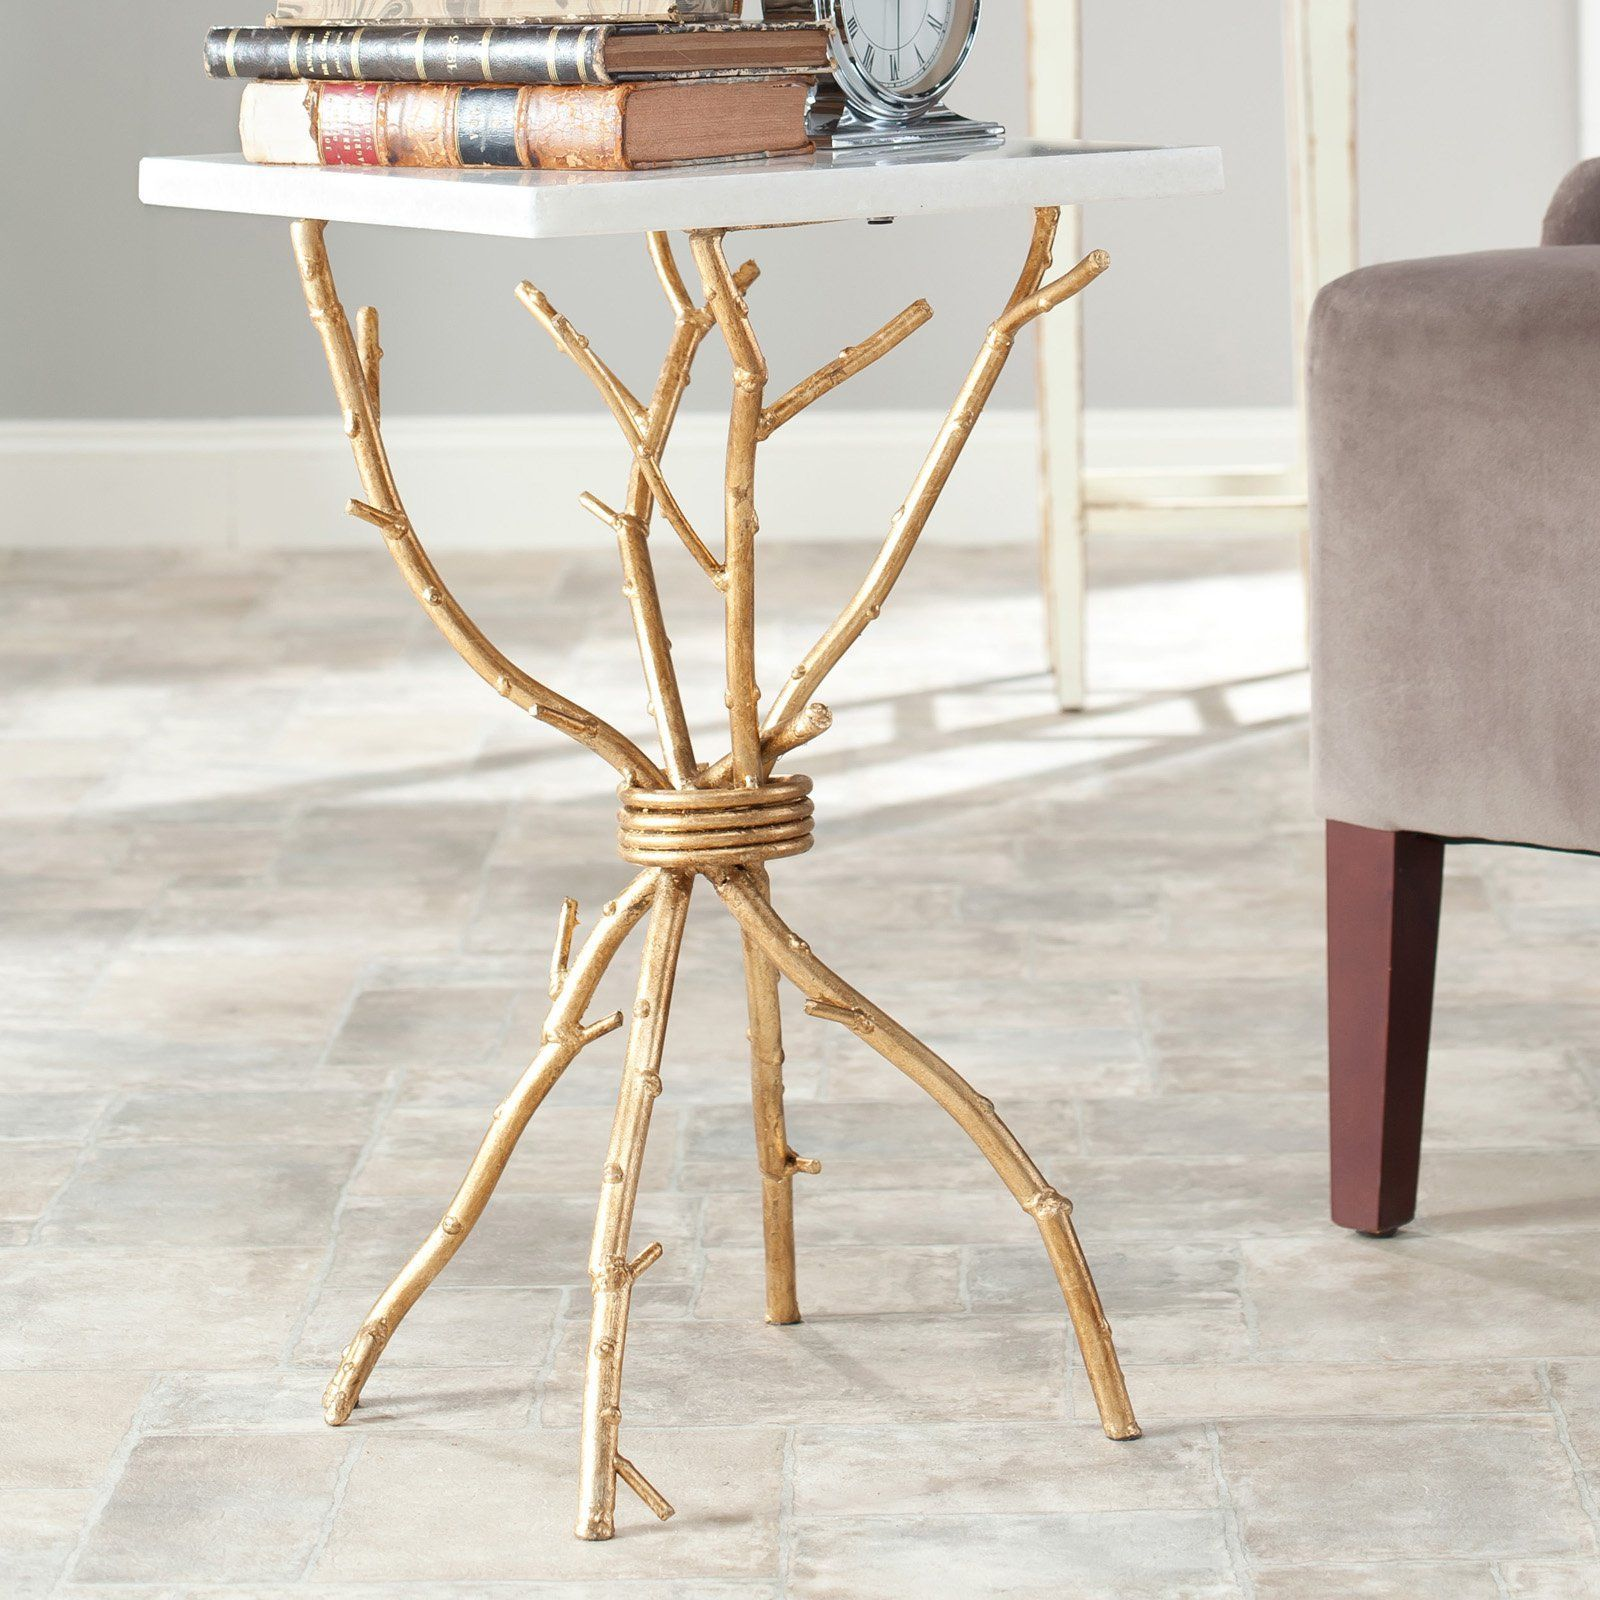 safavieh alexa marble top gold accent table products with dale tiffany hummingbird lamp hampton bay posada metal basket end round faux coffee rustic chairs trestle pier bedroom